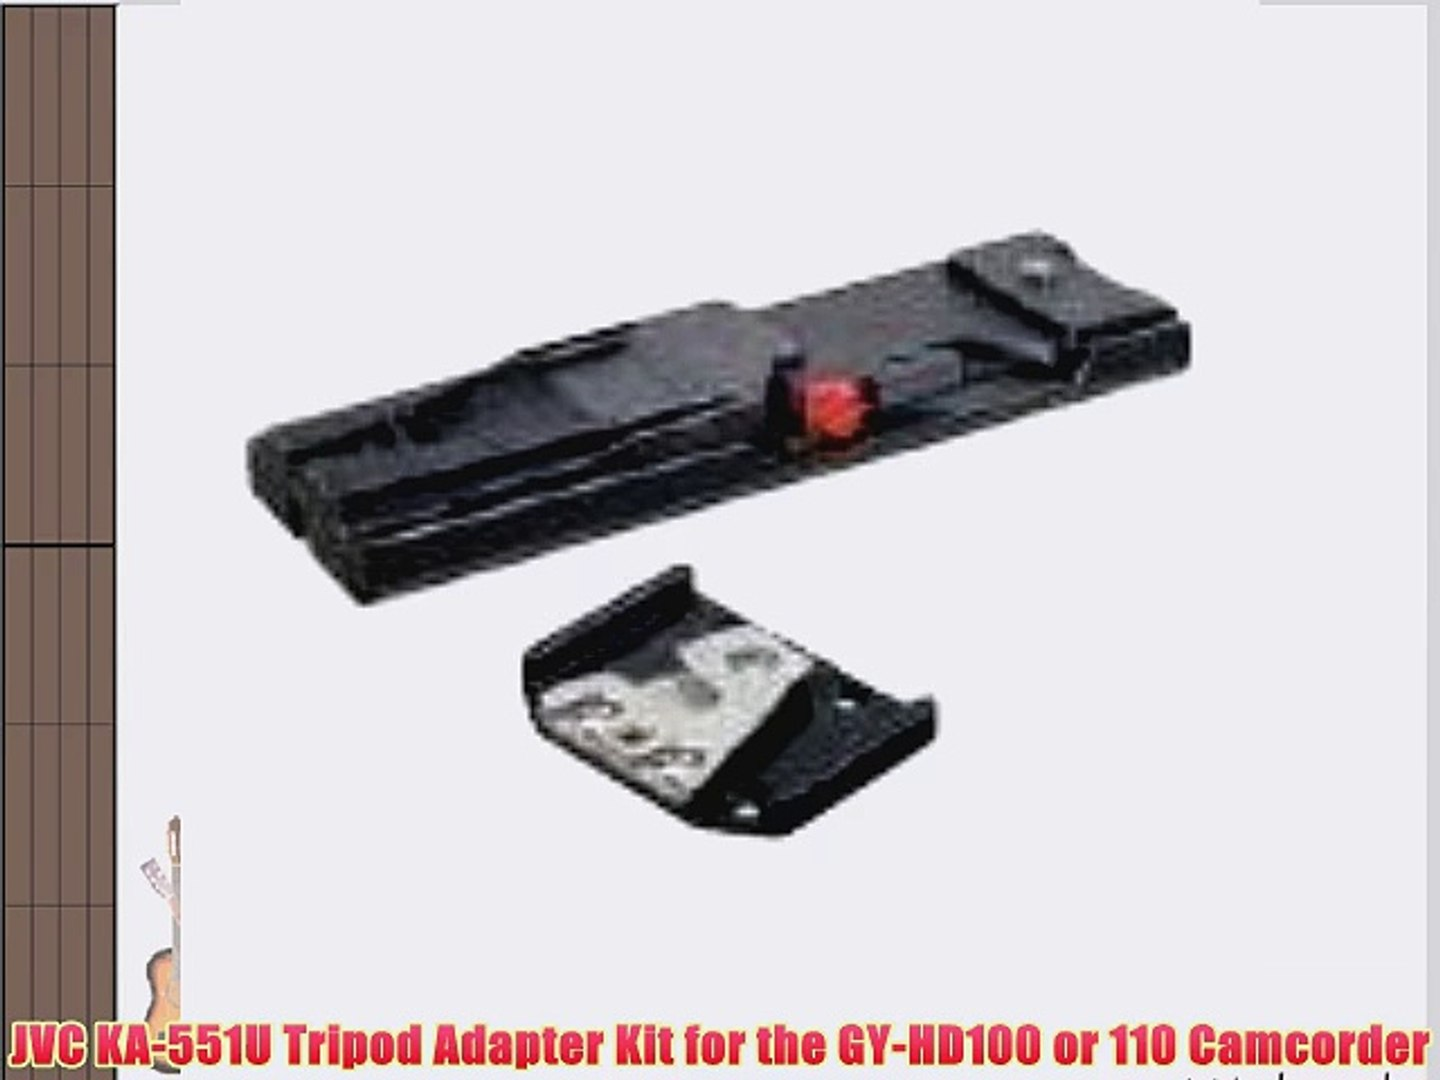 JVC KA-551U Tripod Adapter Kit for the GY-HD100 or 110 Camcorder